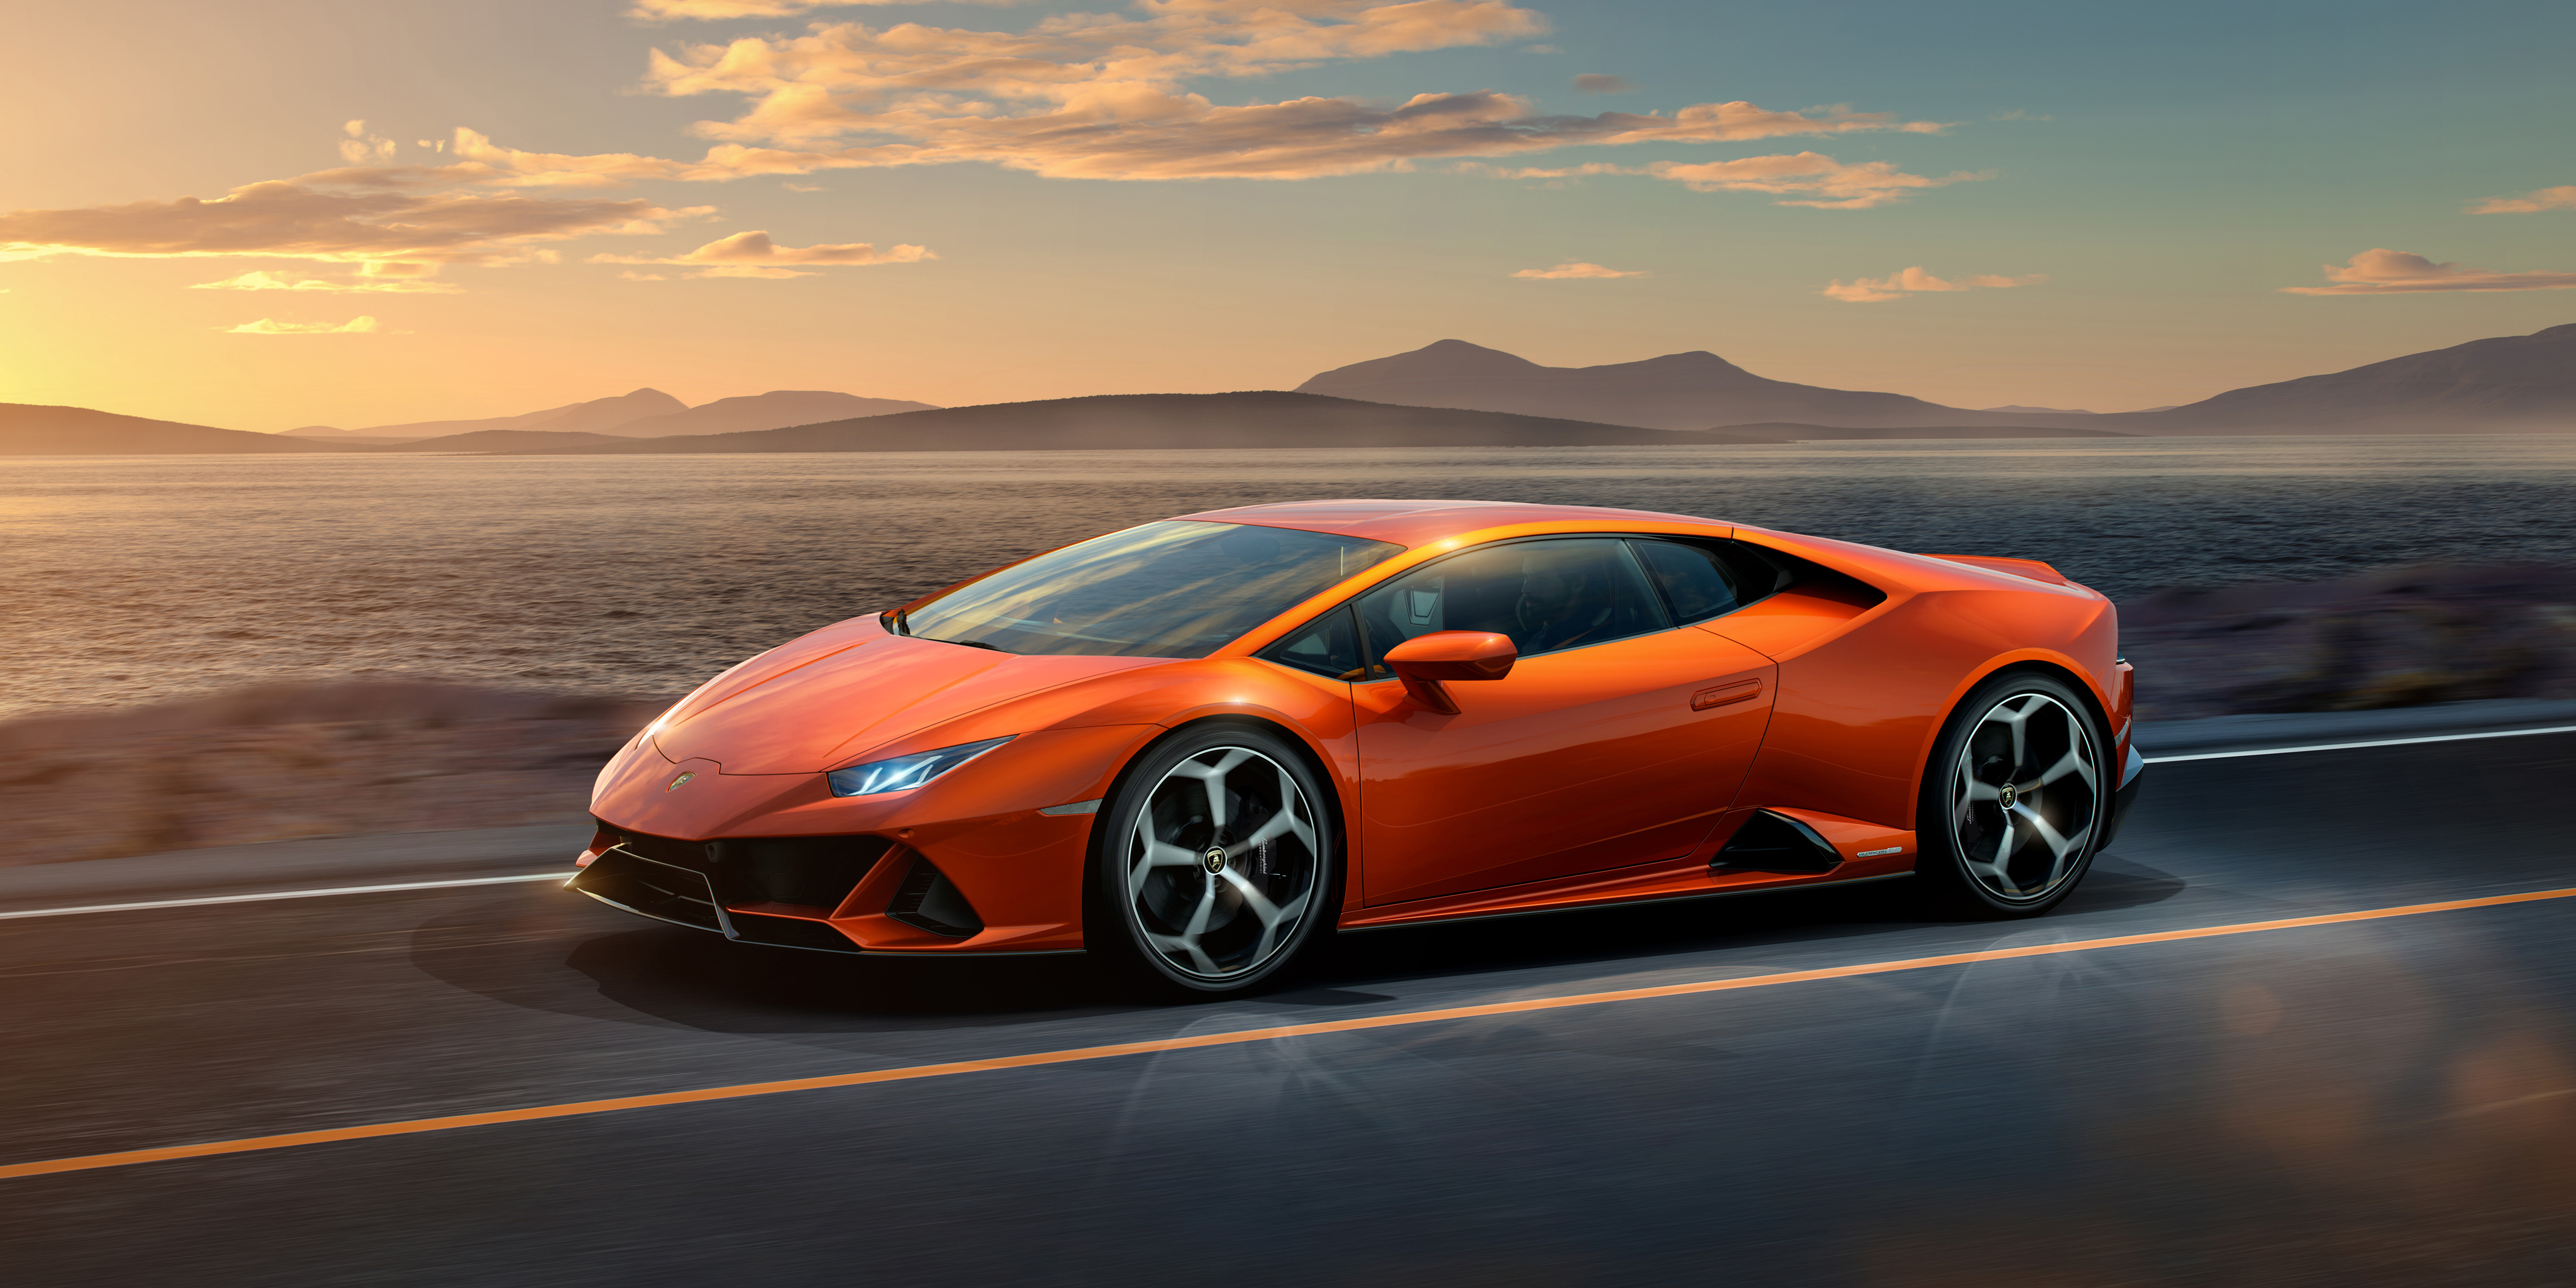 Lamborghini Huracan Evo 2019 Hd Cars 4k Wallpapers Images Backgrounds Photos And Pictures